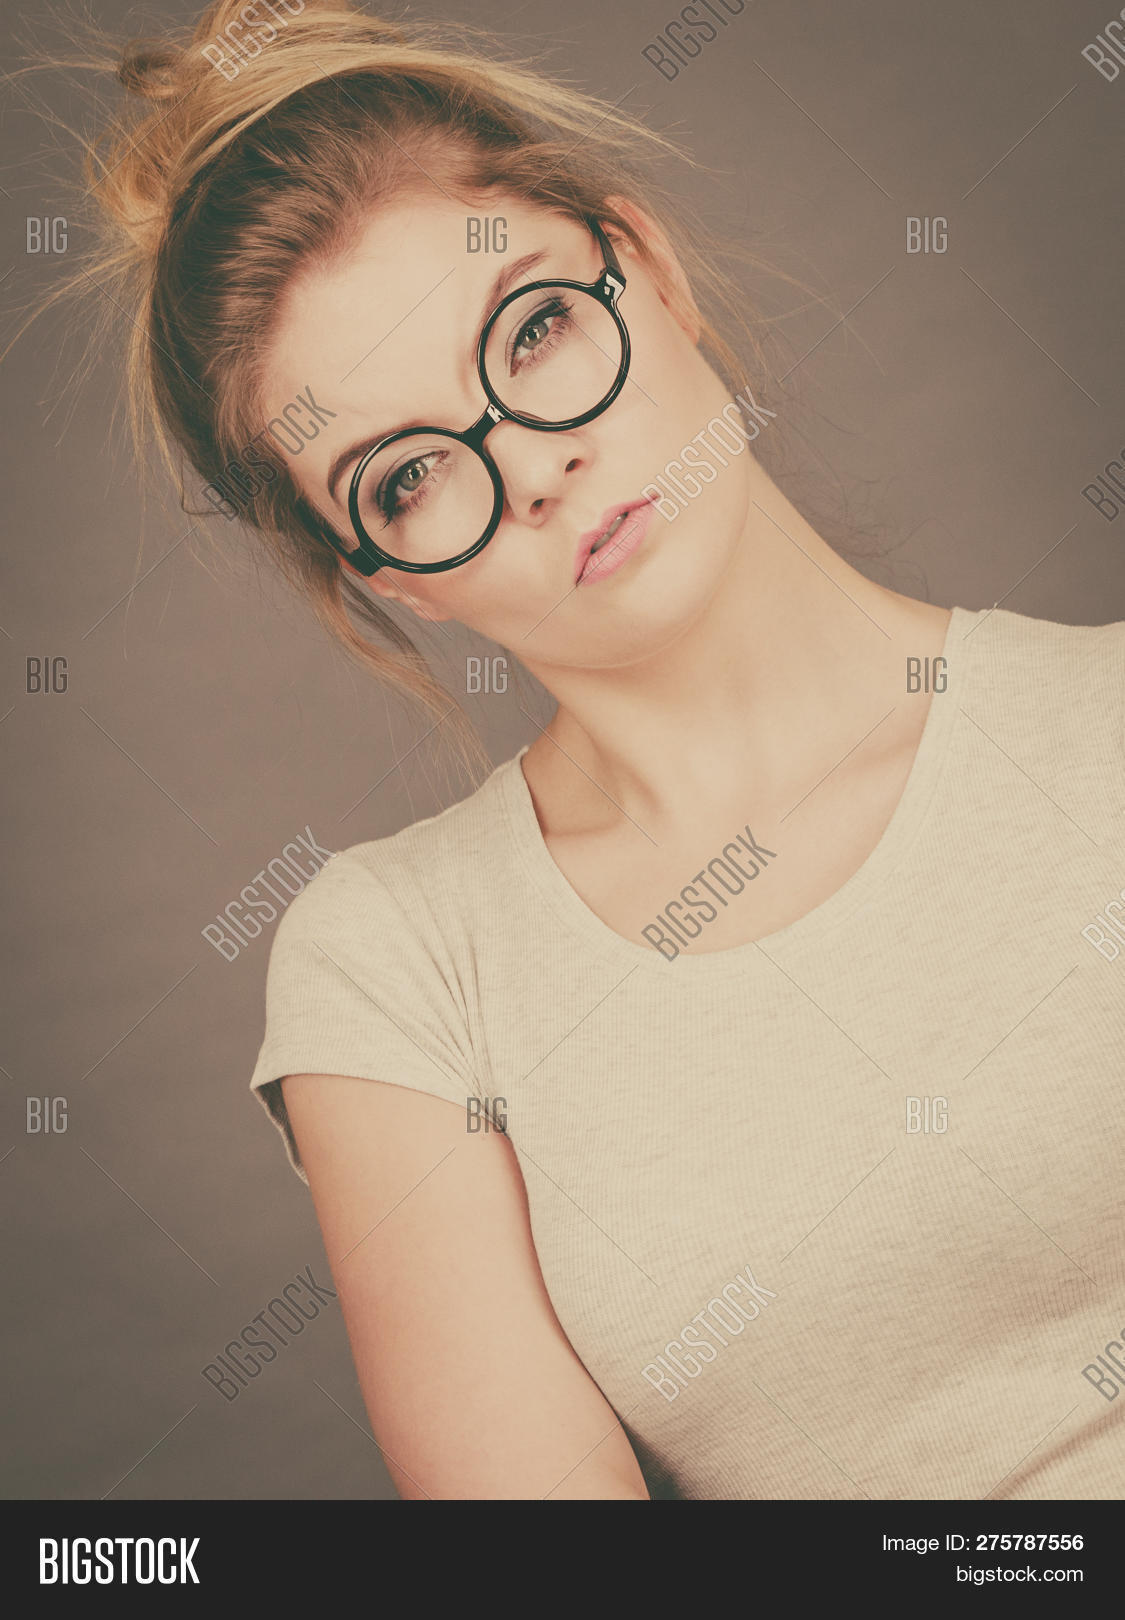 Blonde teen nerdy glasses interesting